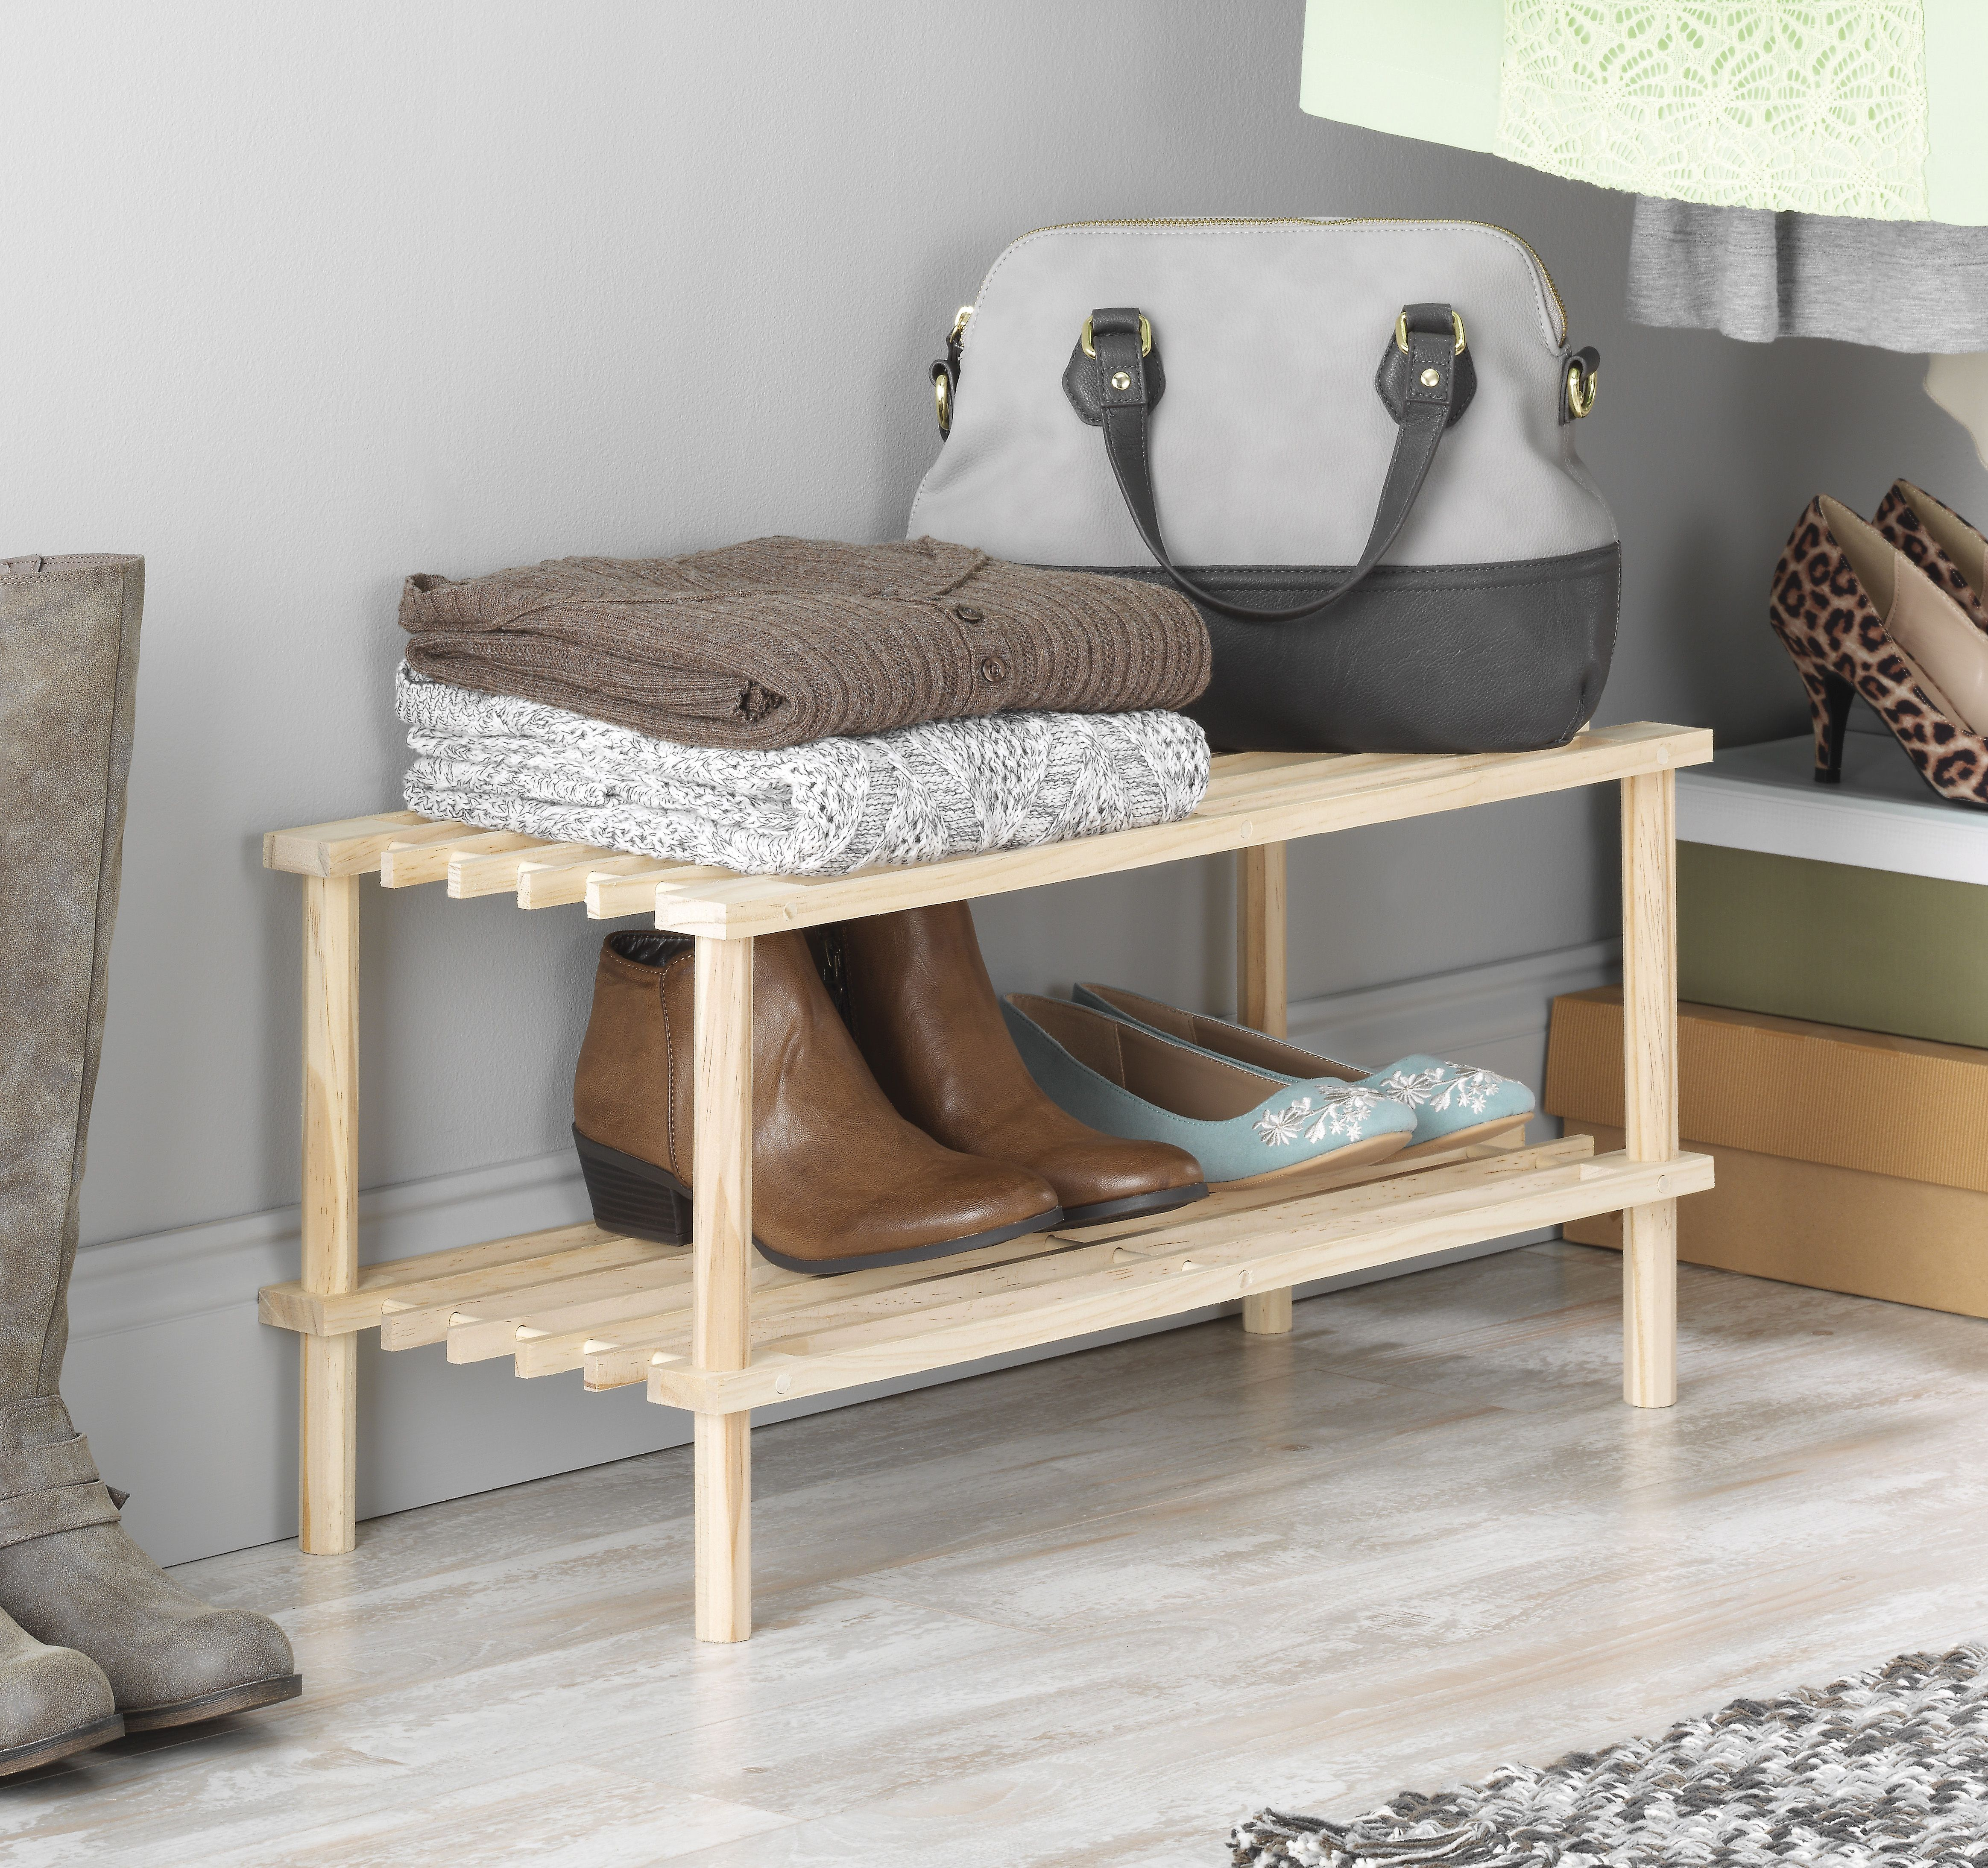 Whitmoru0027s Natural Wood Household Shelves Is An Easy Solution For Shoe,  Sweater, And Accessory Storage. Use It In The Garage, An Entryway, Or In  The Closet; ...